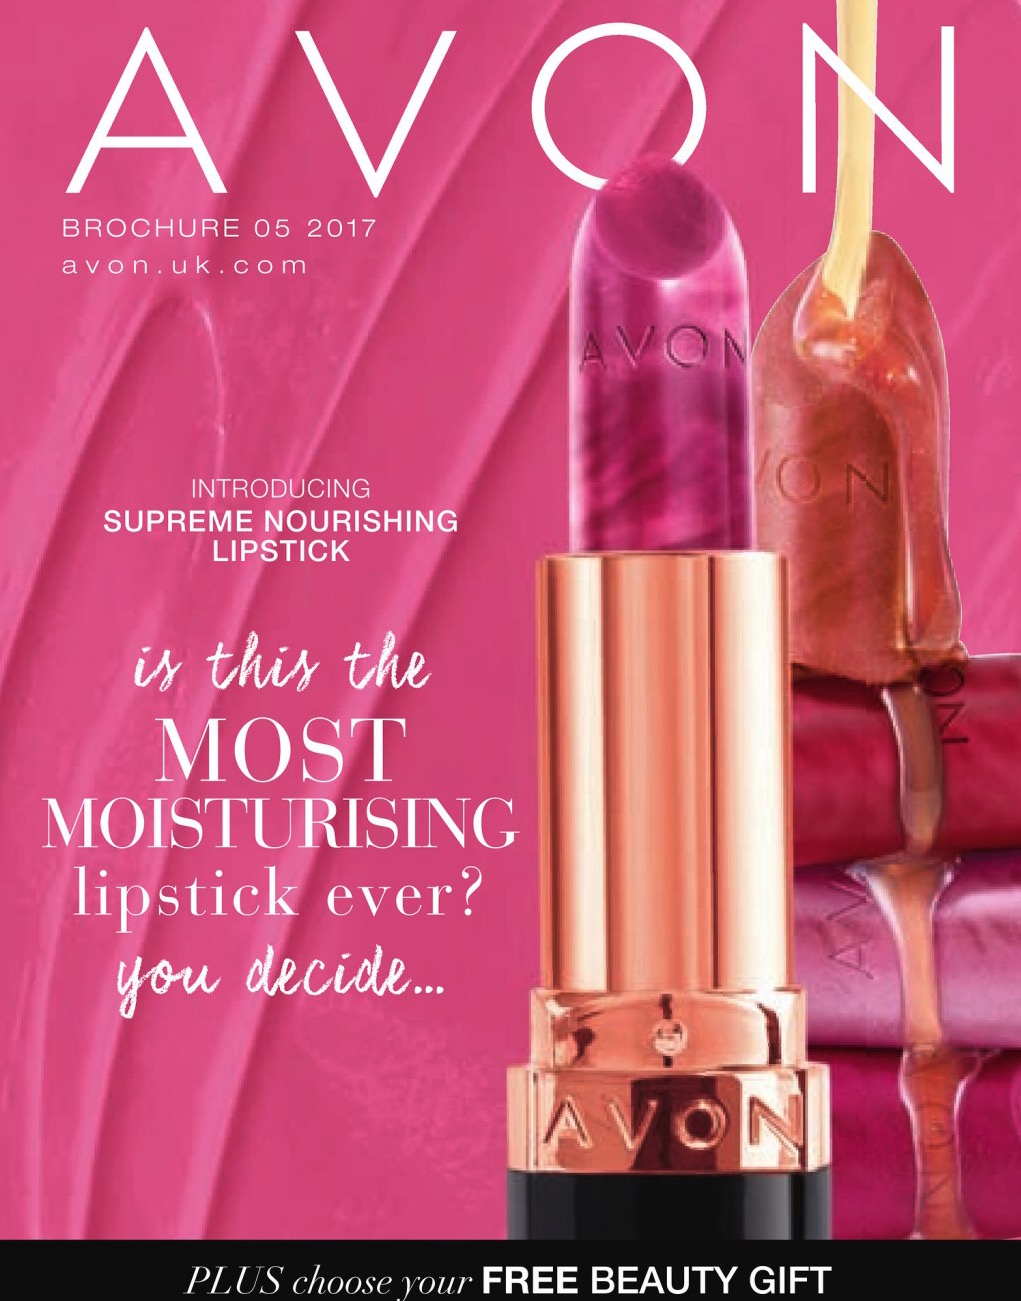 Avon Campaign 5 2017 Brochure Online UK | Join Avon